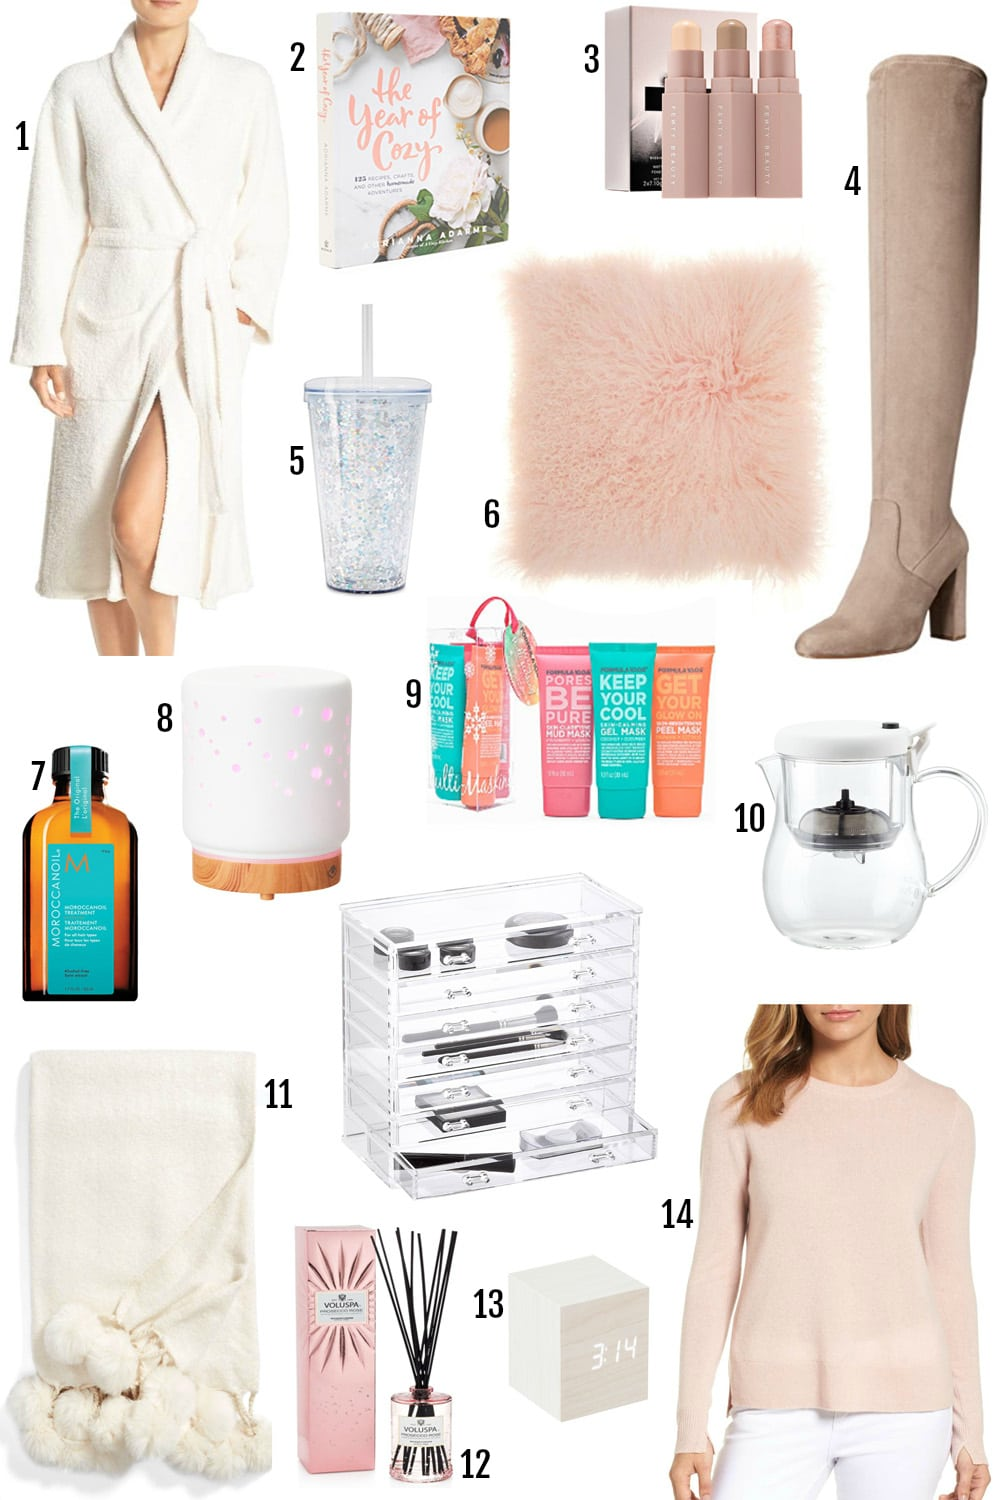 the year of cozy | gifts to pamper her | gifts for mom | gifts for sister, friend, best friend, aunt, neighbor | gifts for relaxation | rejuvenation | cozy sweater, sparkle tumbler, bathrobe